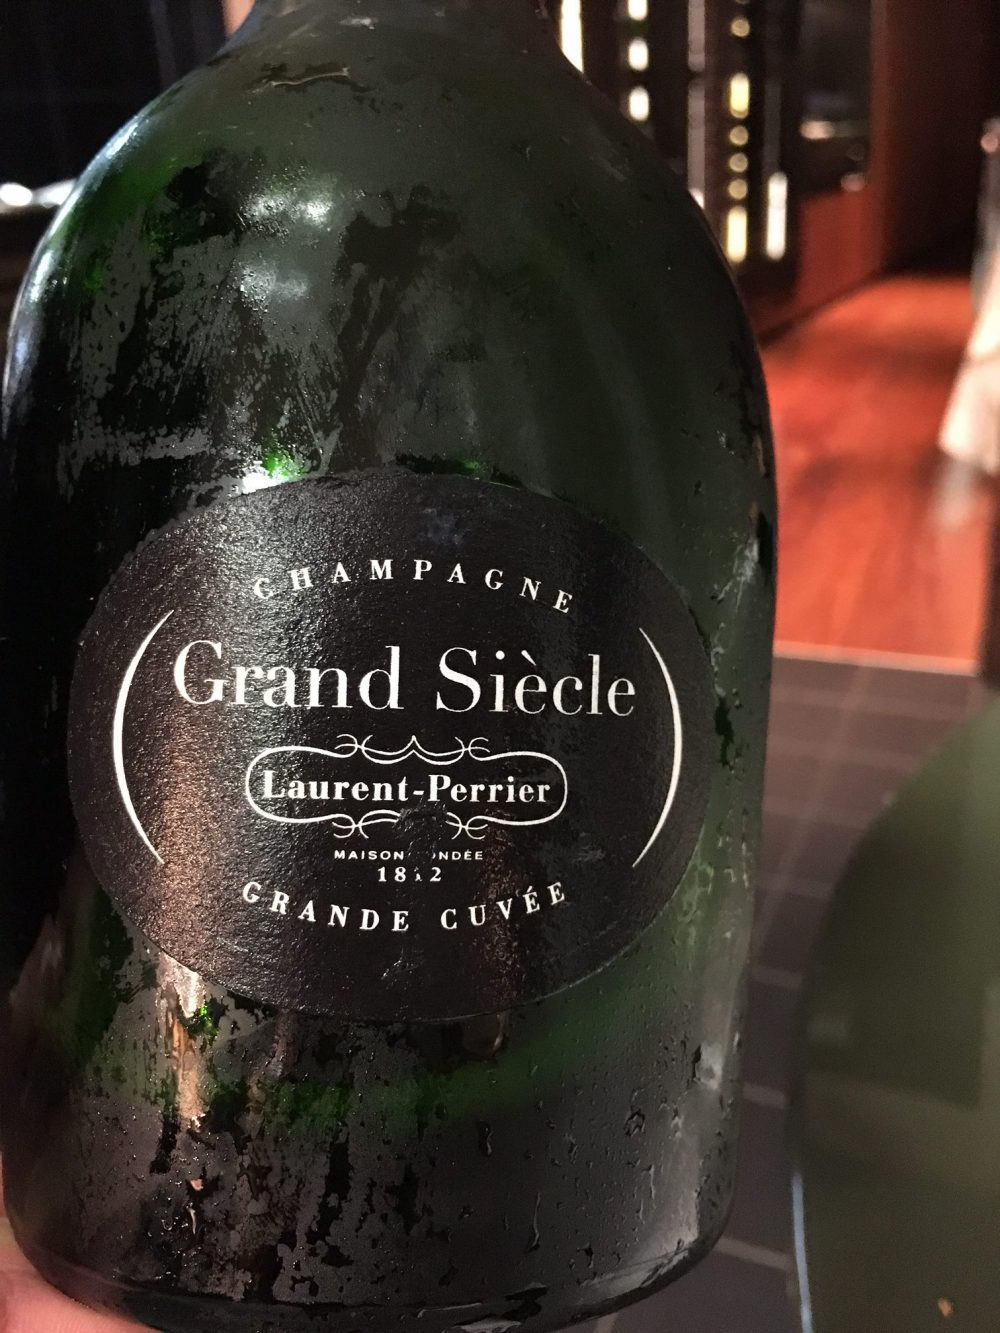 Seta - Champagne Grand Siécle Laurent-Perrier